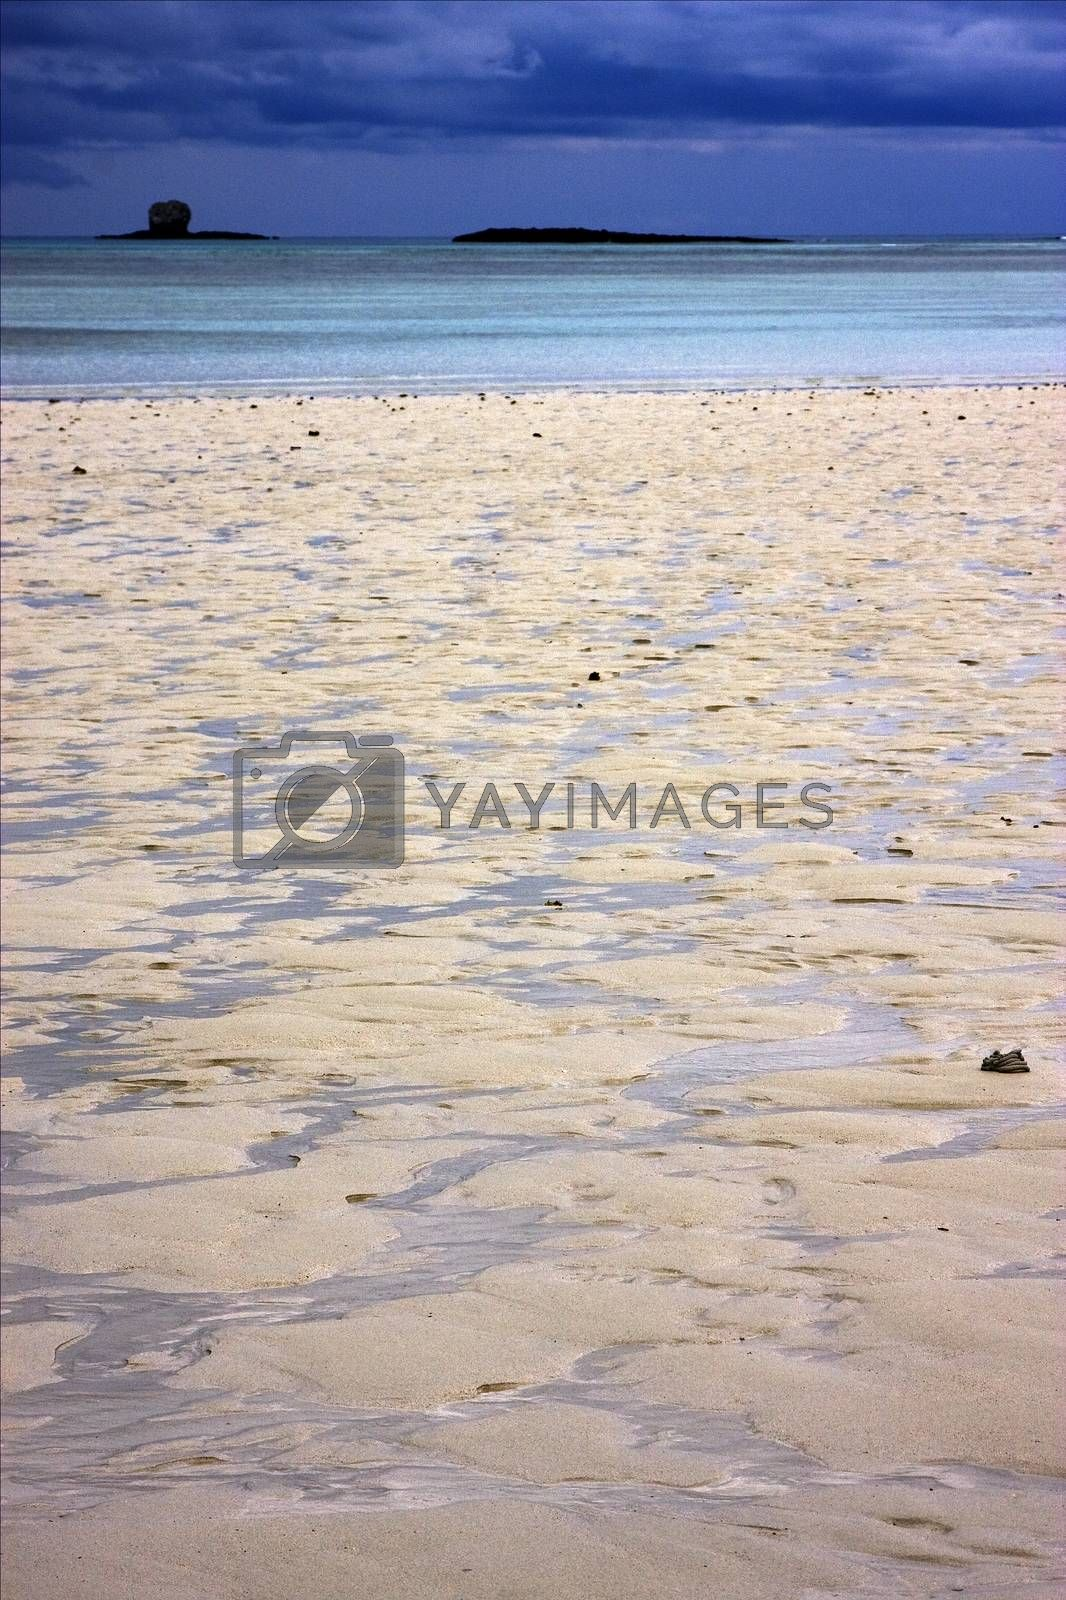 Royalty free image of  in the indian ocean by lkpro